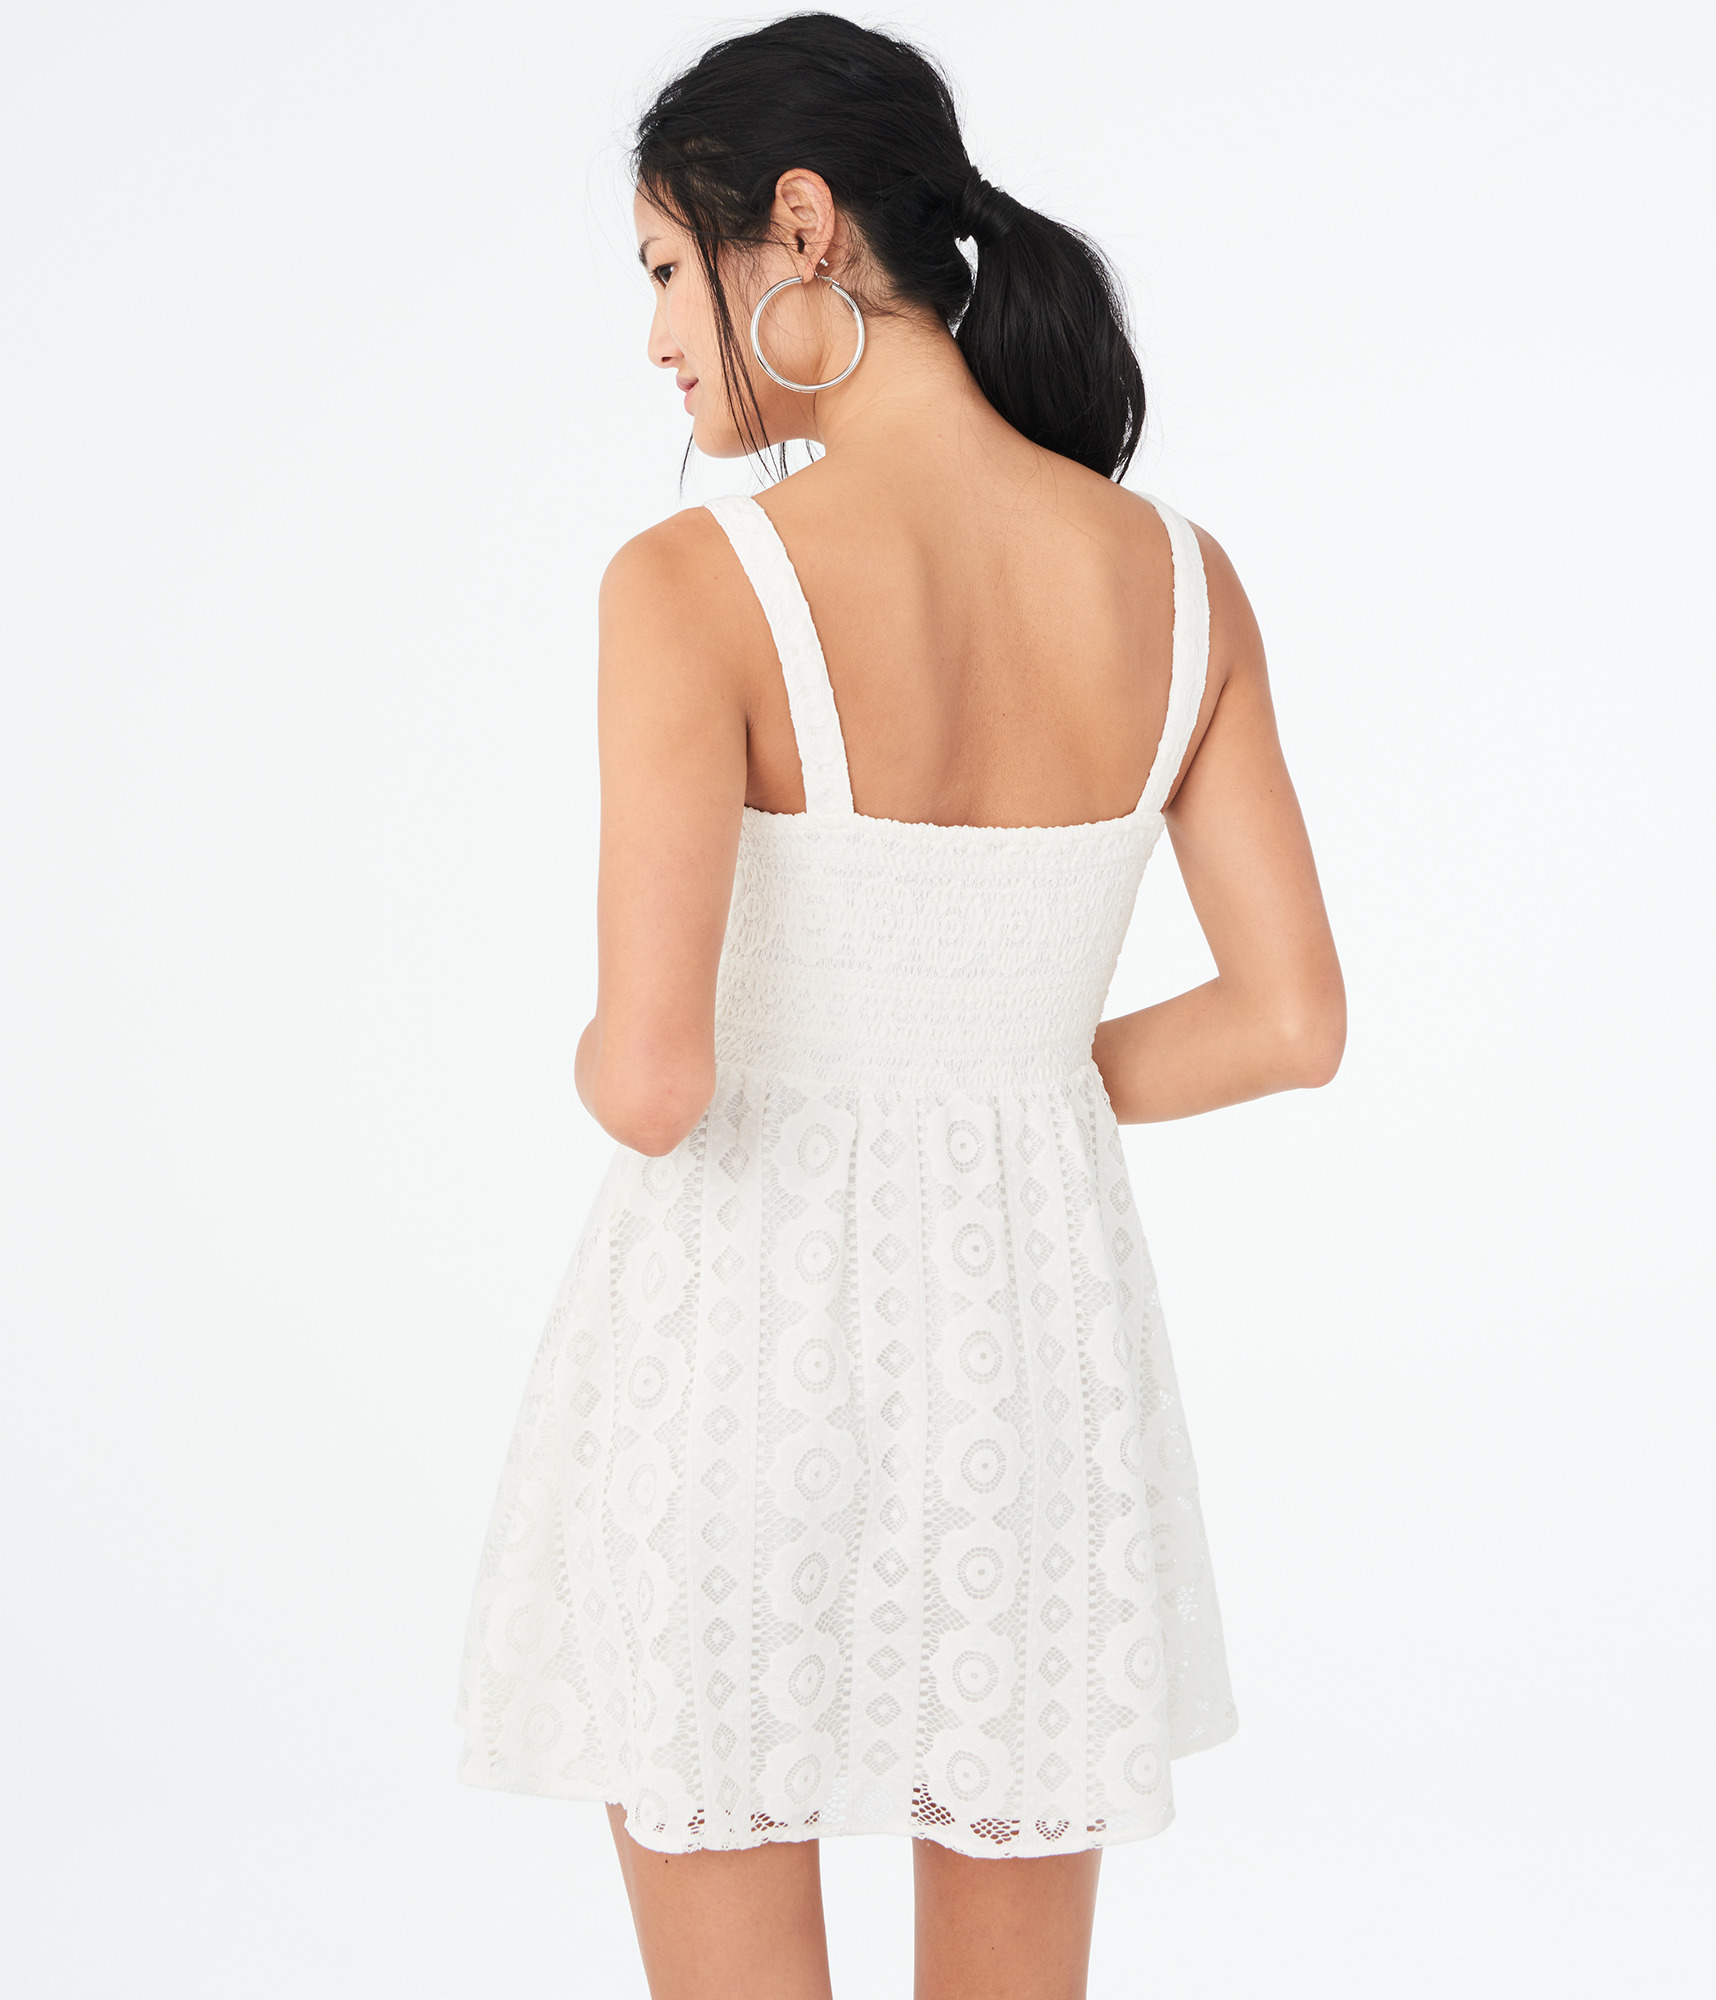 aeropostale-womens-solid-square-neck-lace-corset-fit-amp-flare-dress thumbnail 10